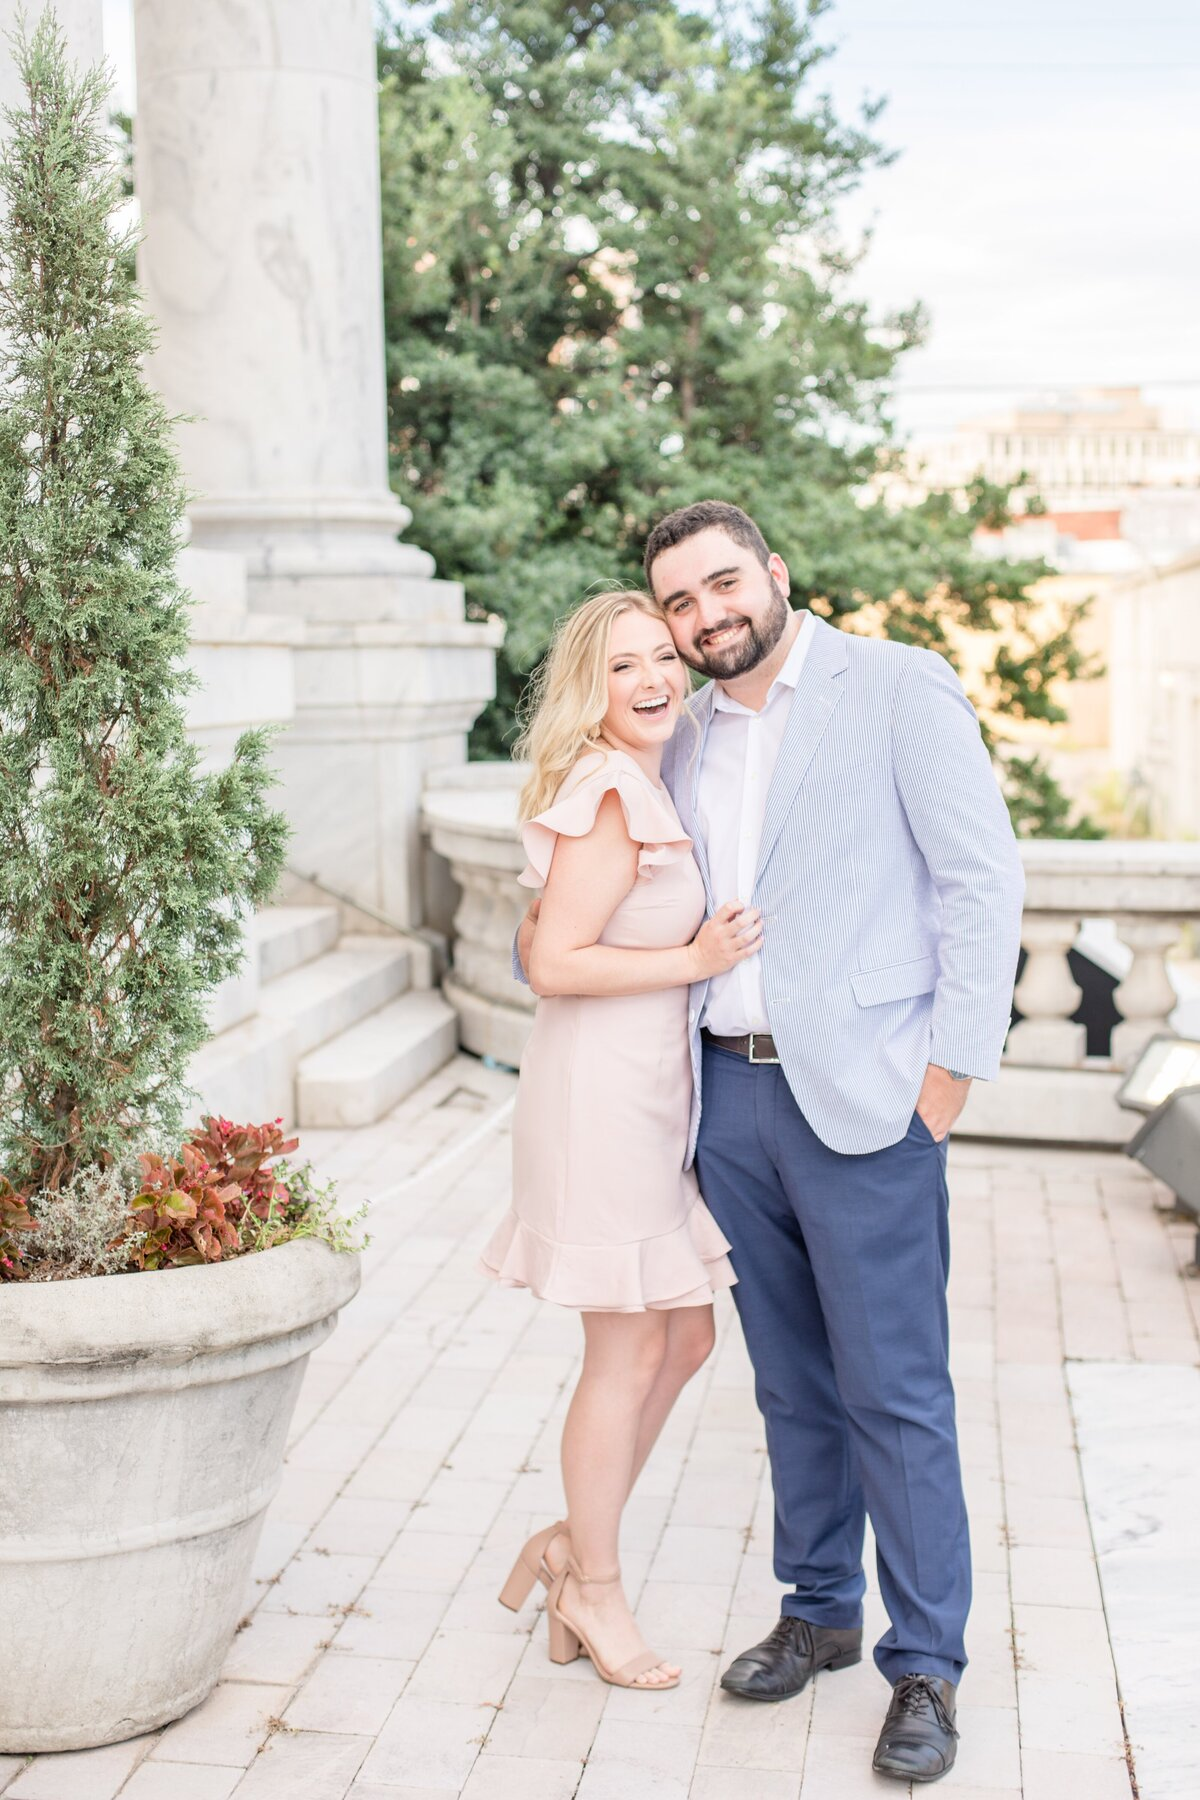 Birmingham, Alabama Wedding Photographers - Katie & Alec Photography Engagement Galleries 64